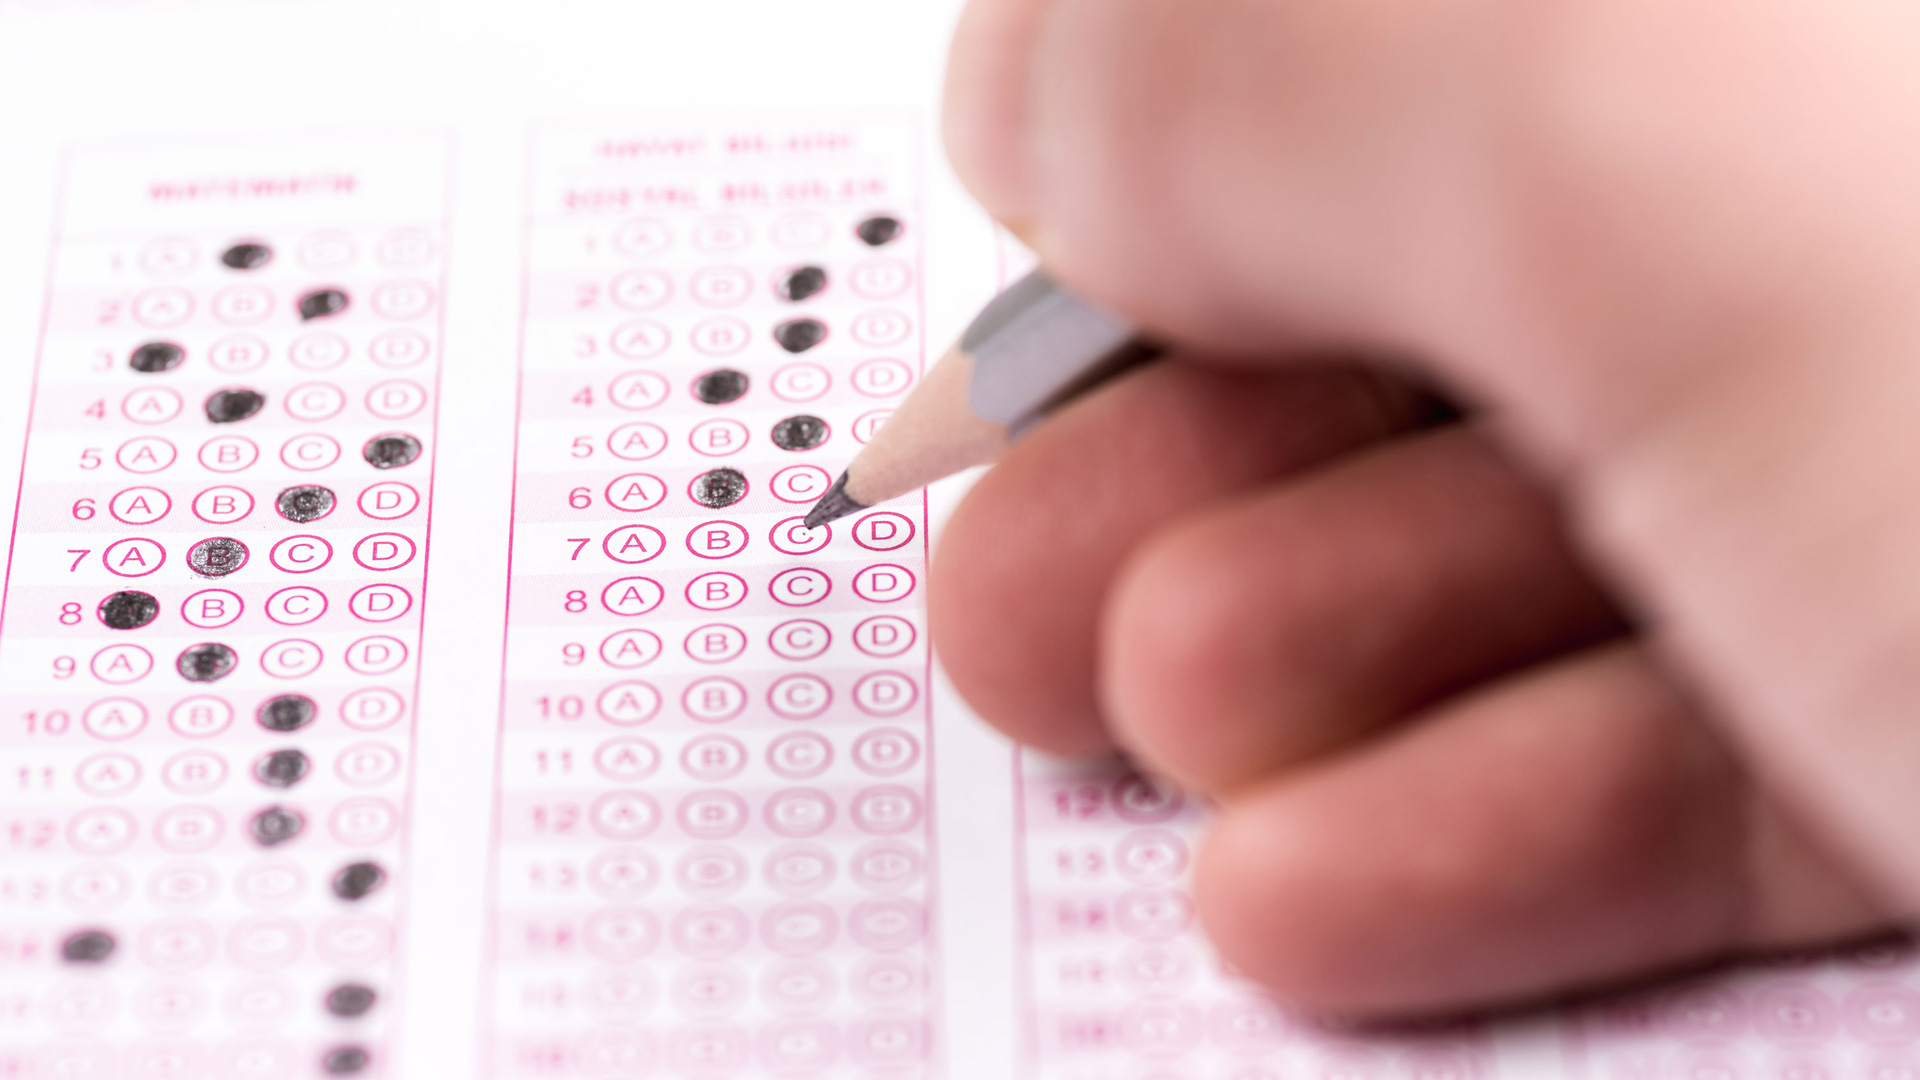 An increasing number of universities are dropping the SAT and ACT requirement for fall 2021 admissions in response to the coronavirus pandemic. (Shutterstock)